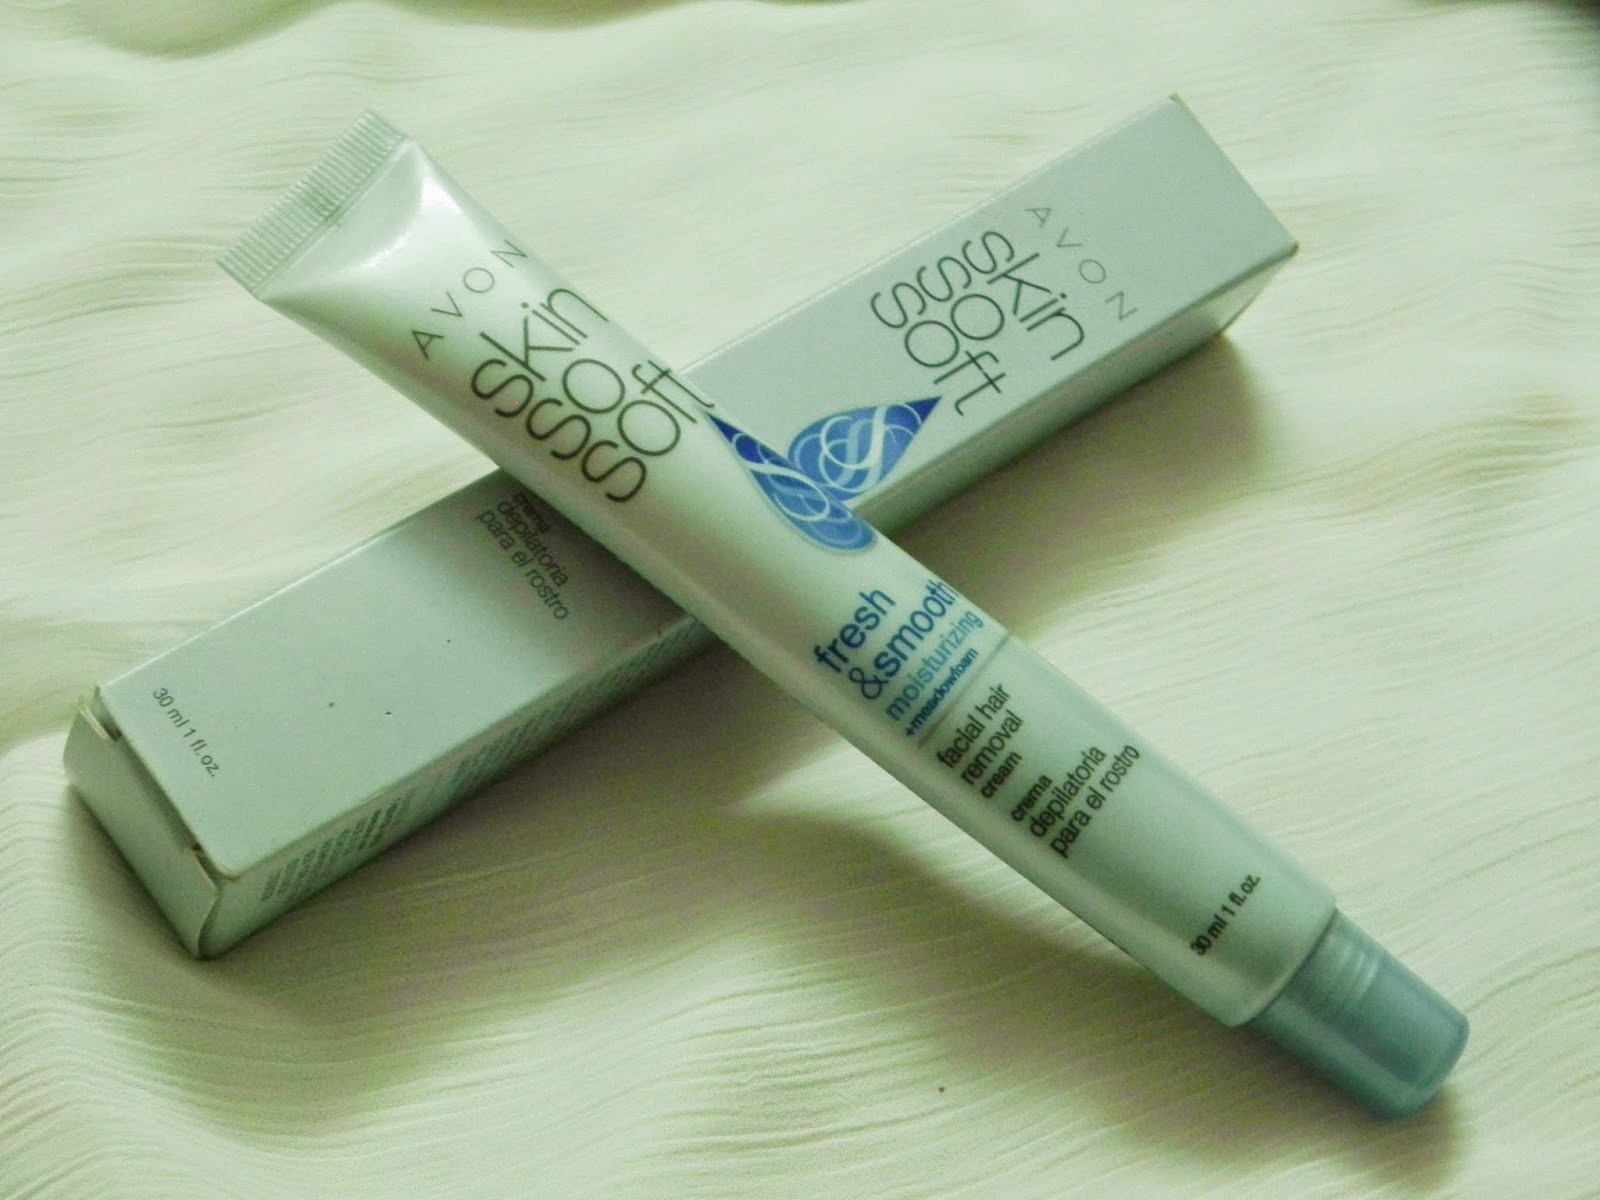 Avon Skin-so-Soft Facial Hair Removal Cream (sensitive skin) Review.